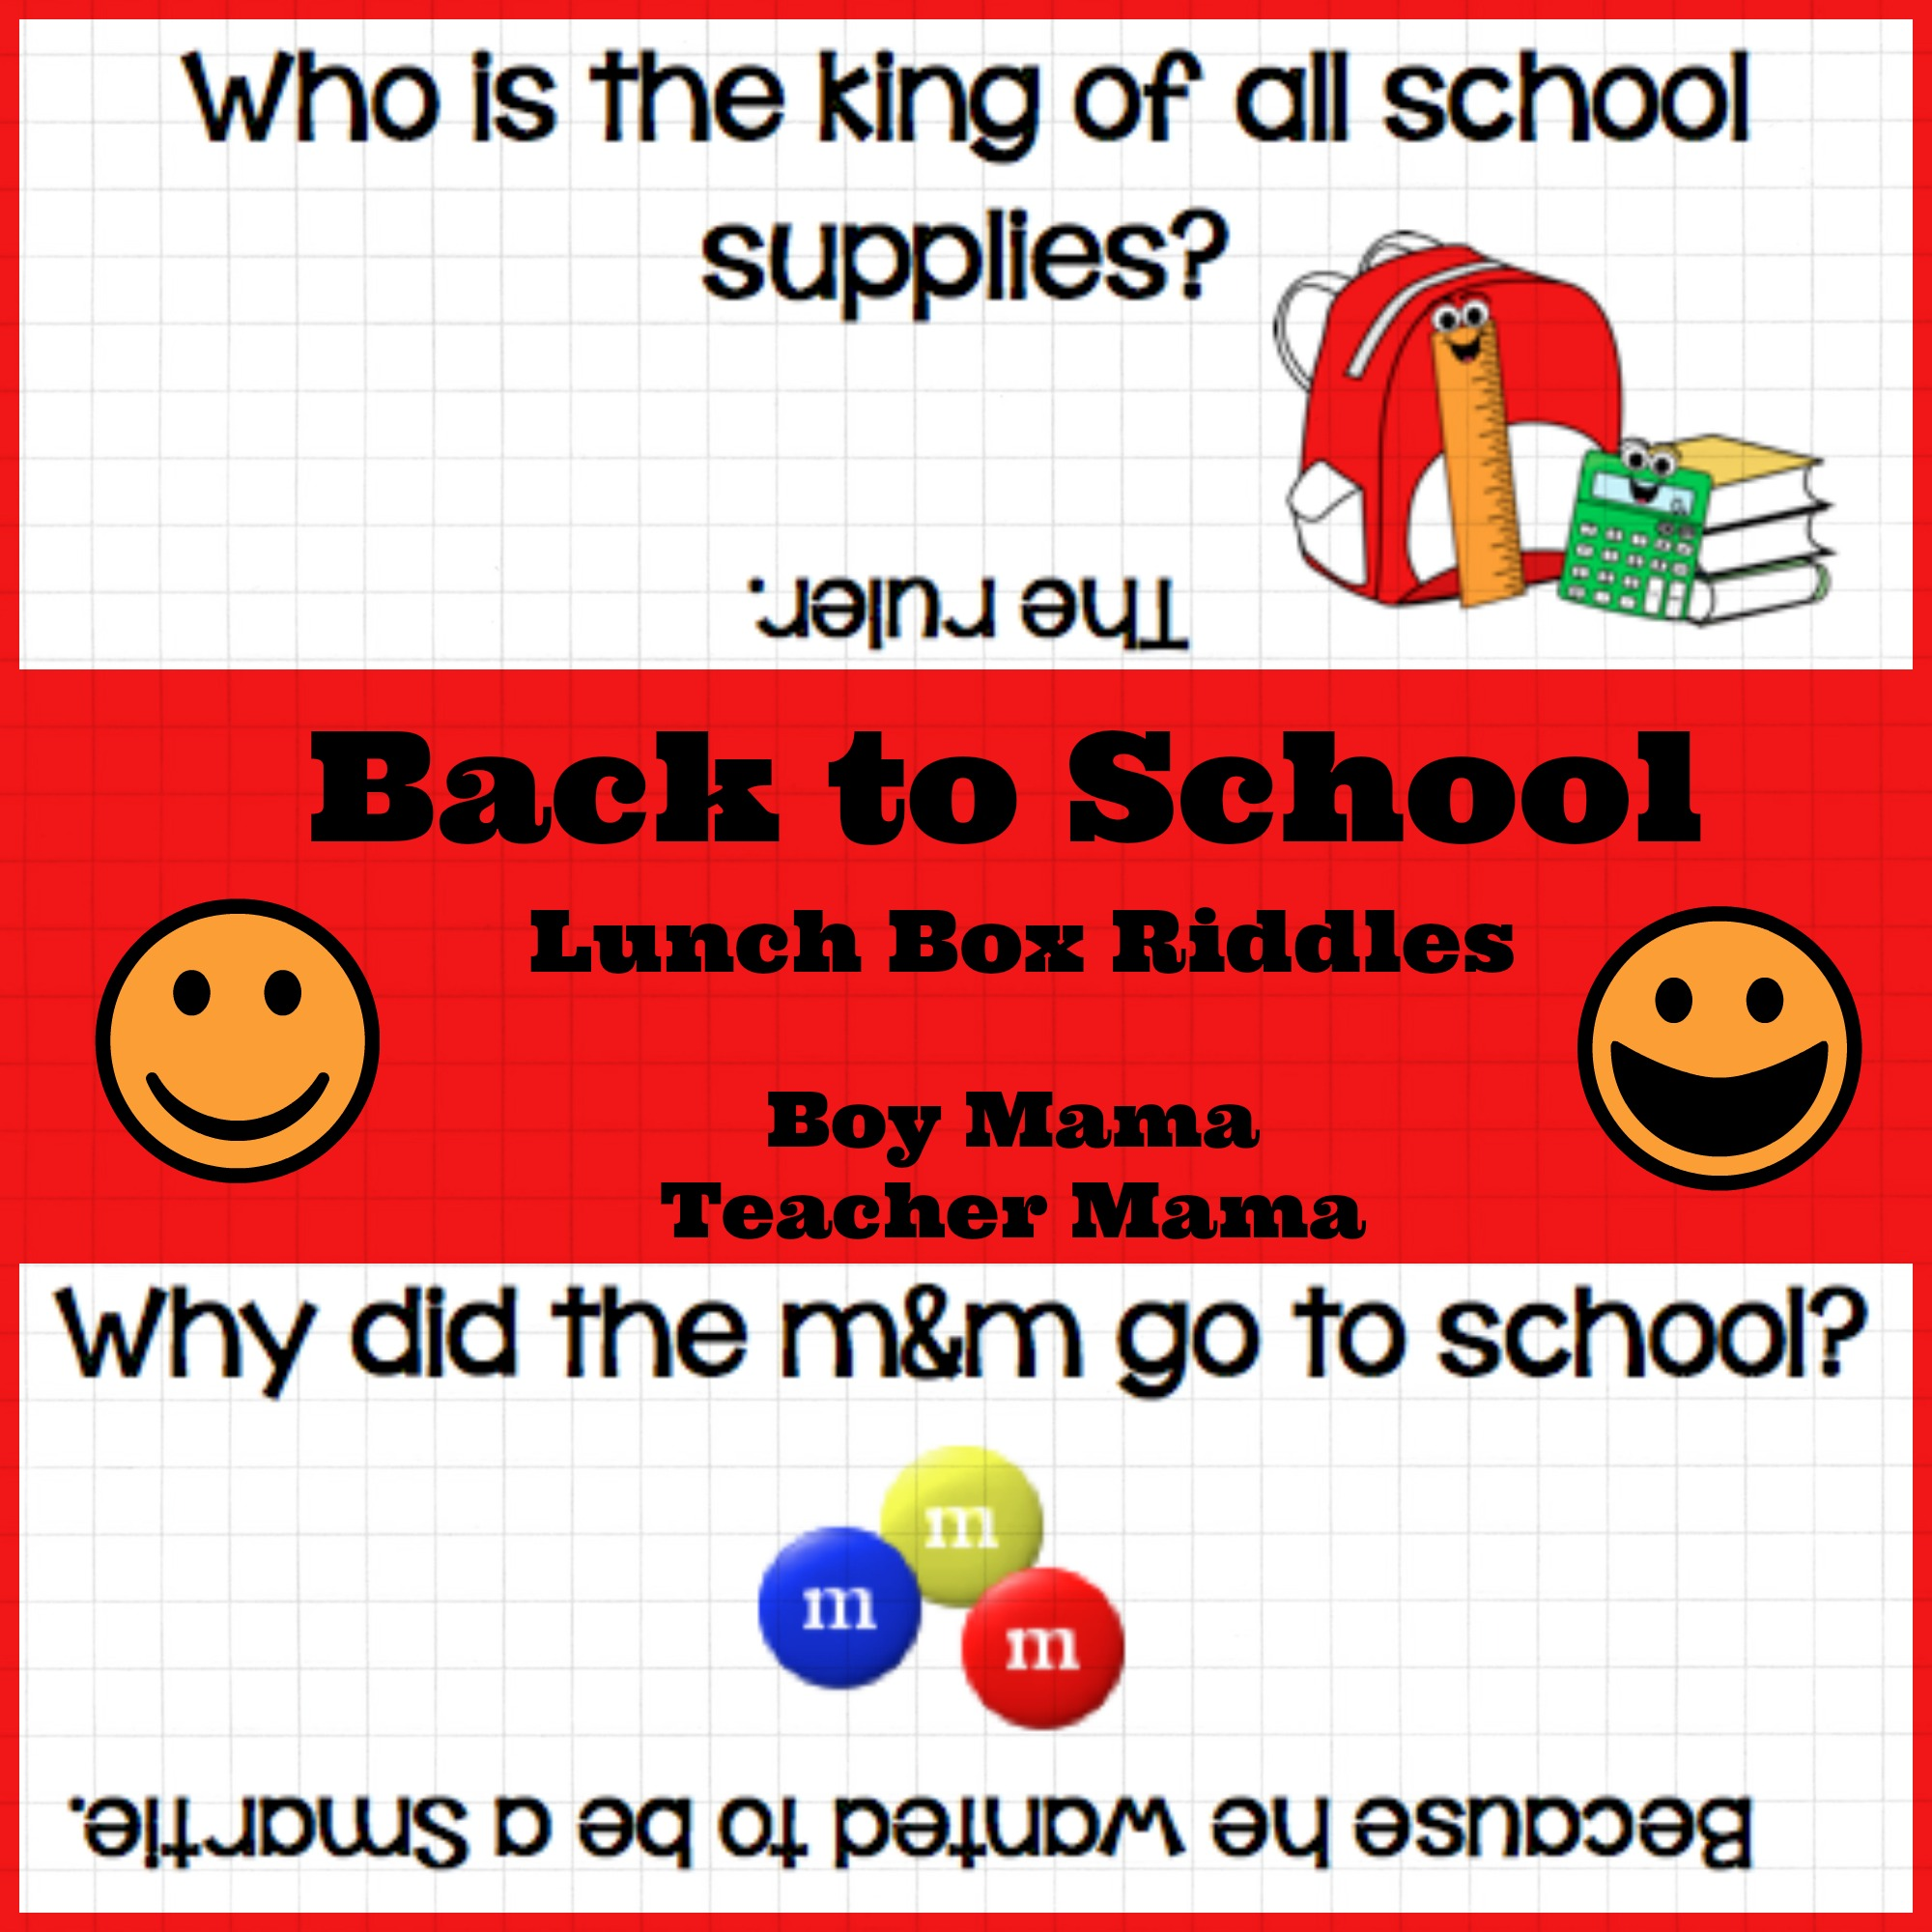 graphic relating to Riddles for Kids Printable called Boy Mama: Back again towards Higher education Lunch Box Riddles Printable - Boy